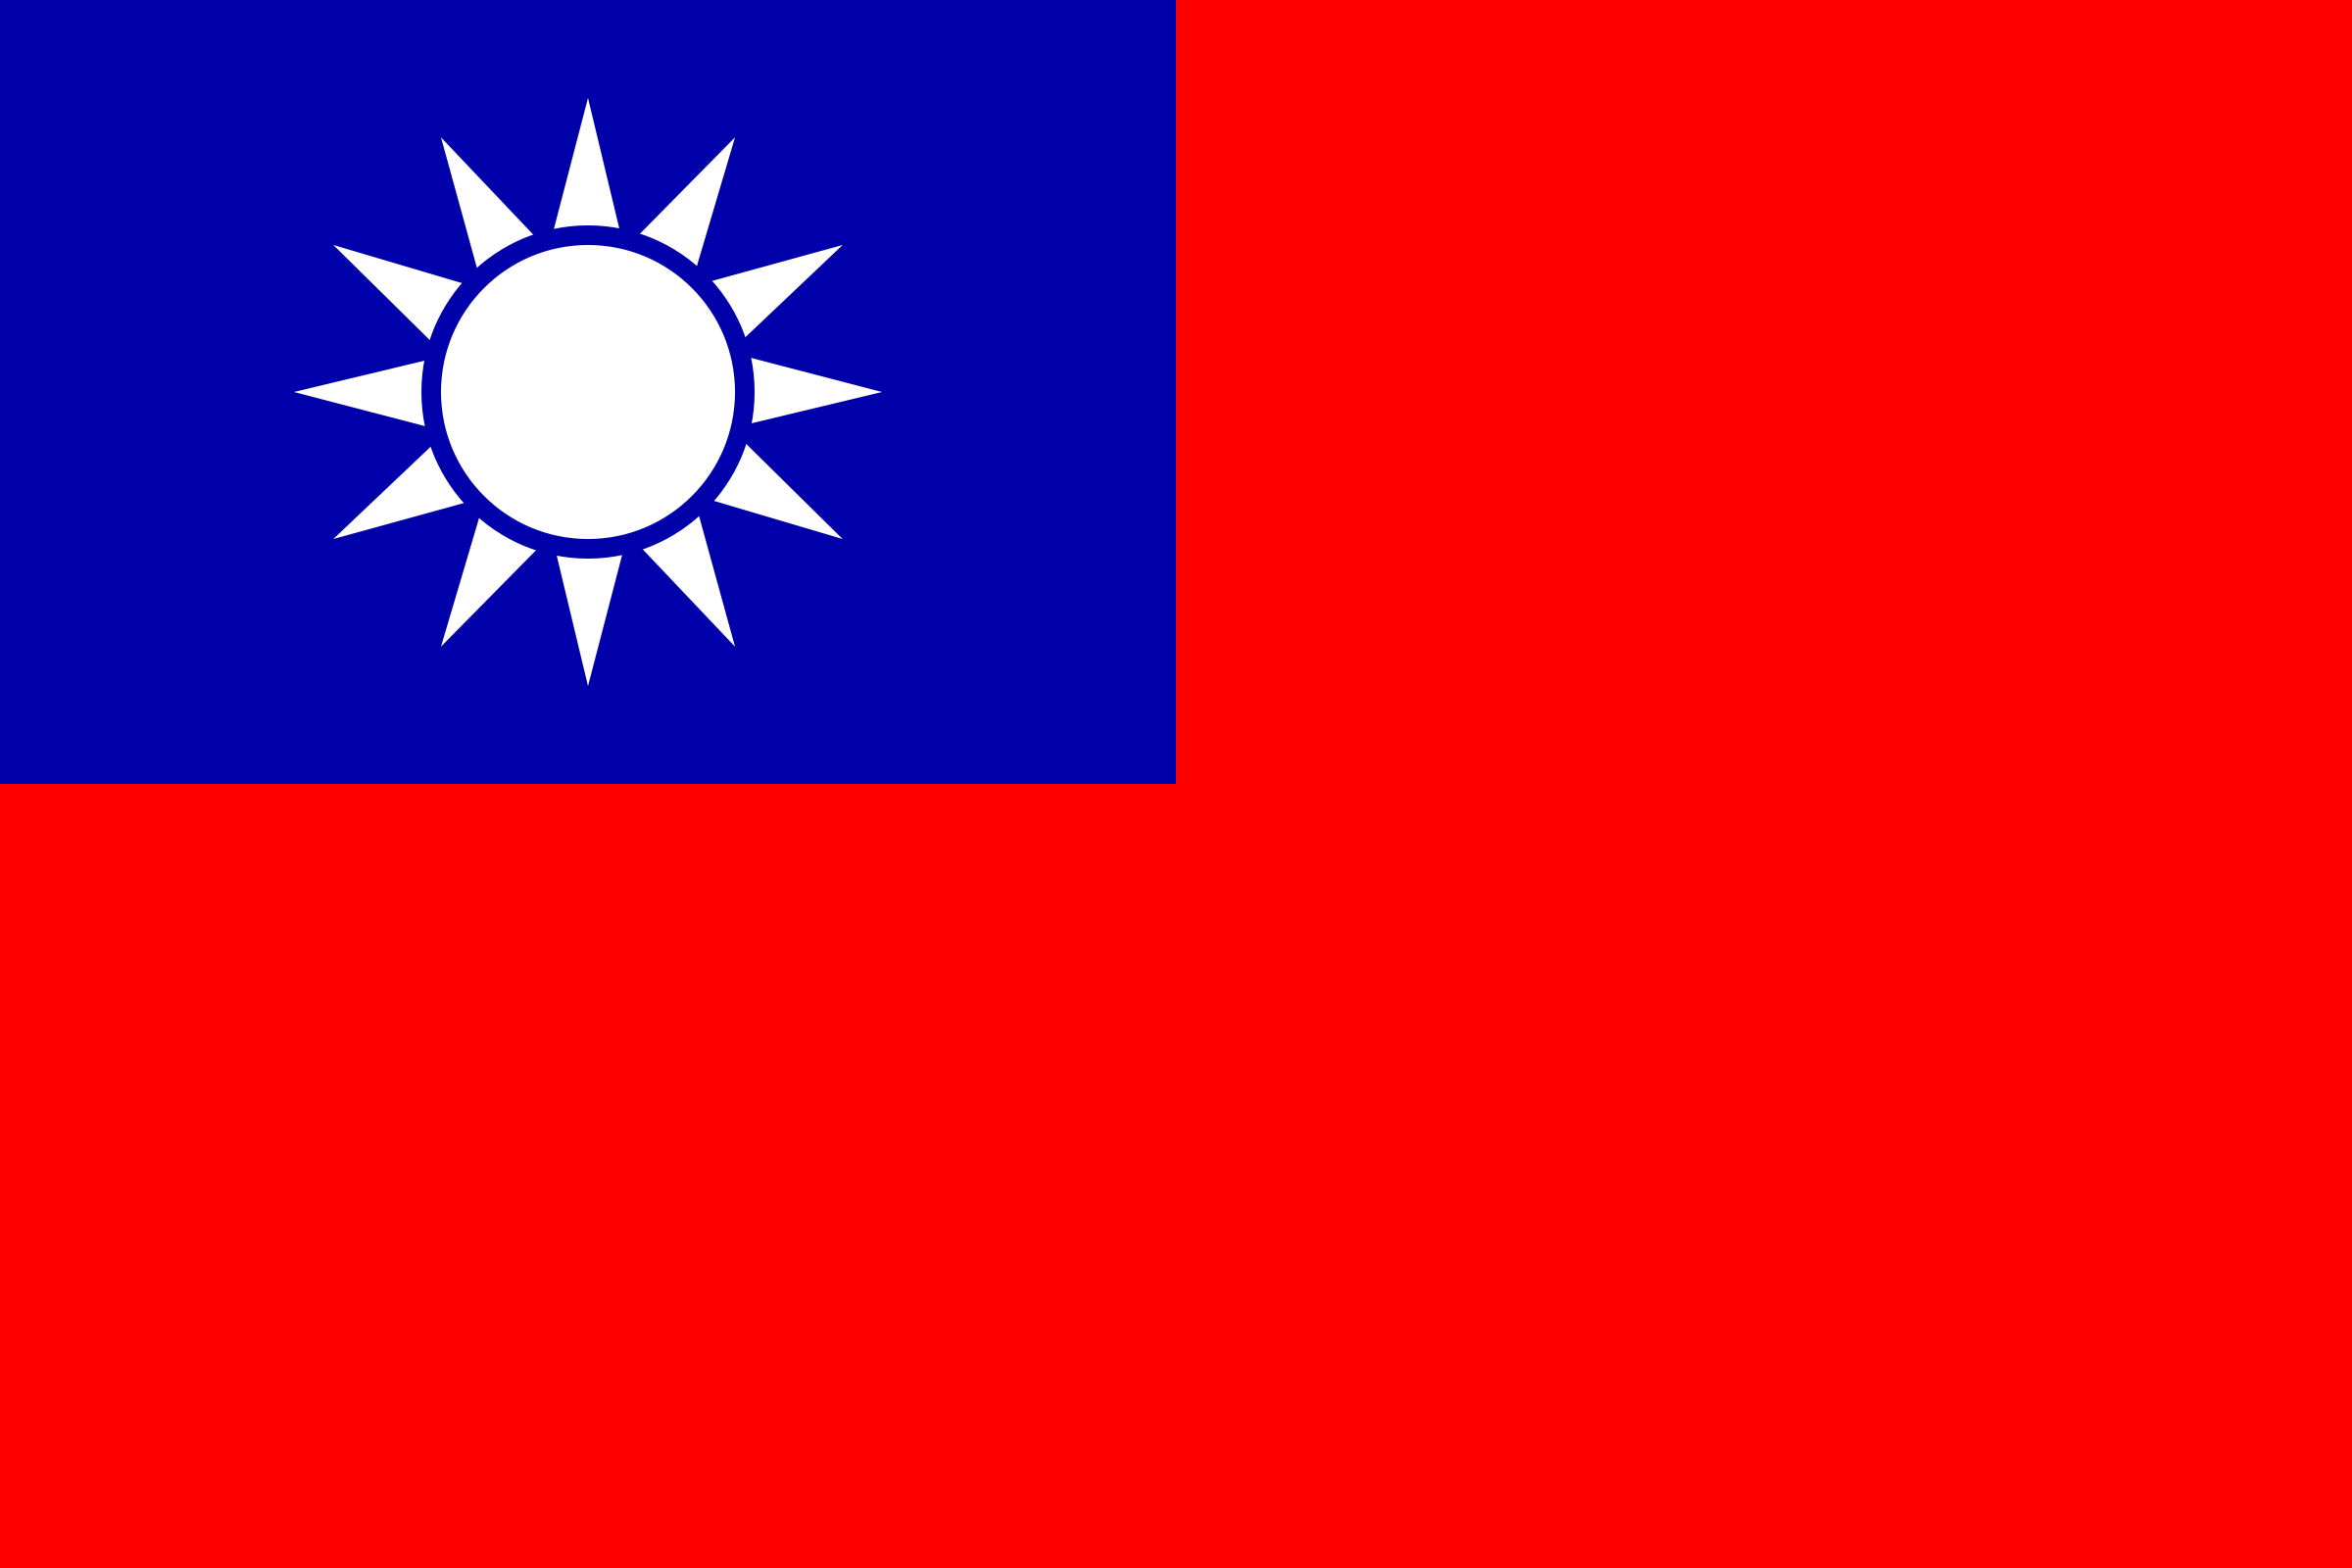 Flag of the Republic of China by Anonymous